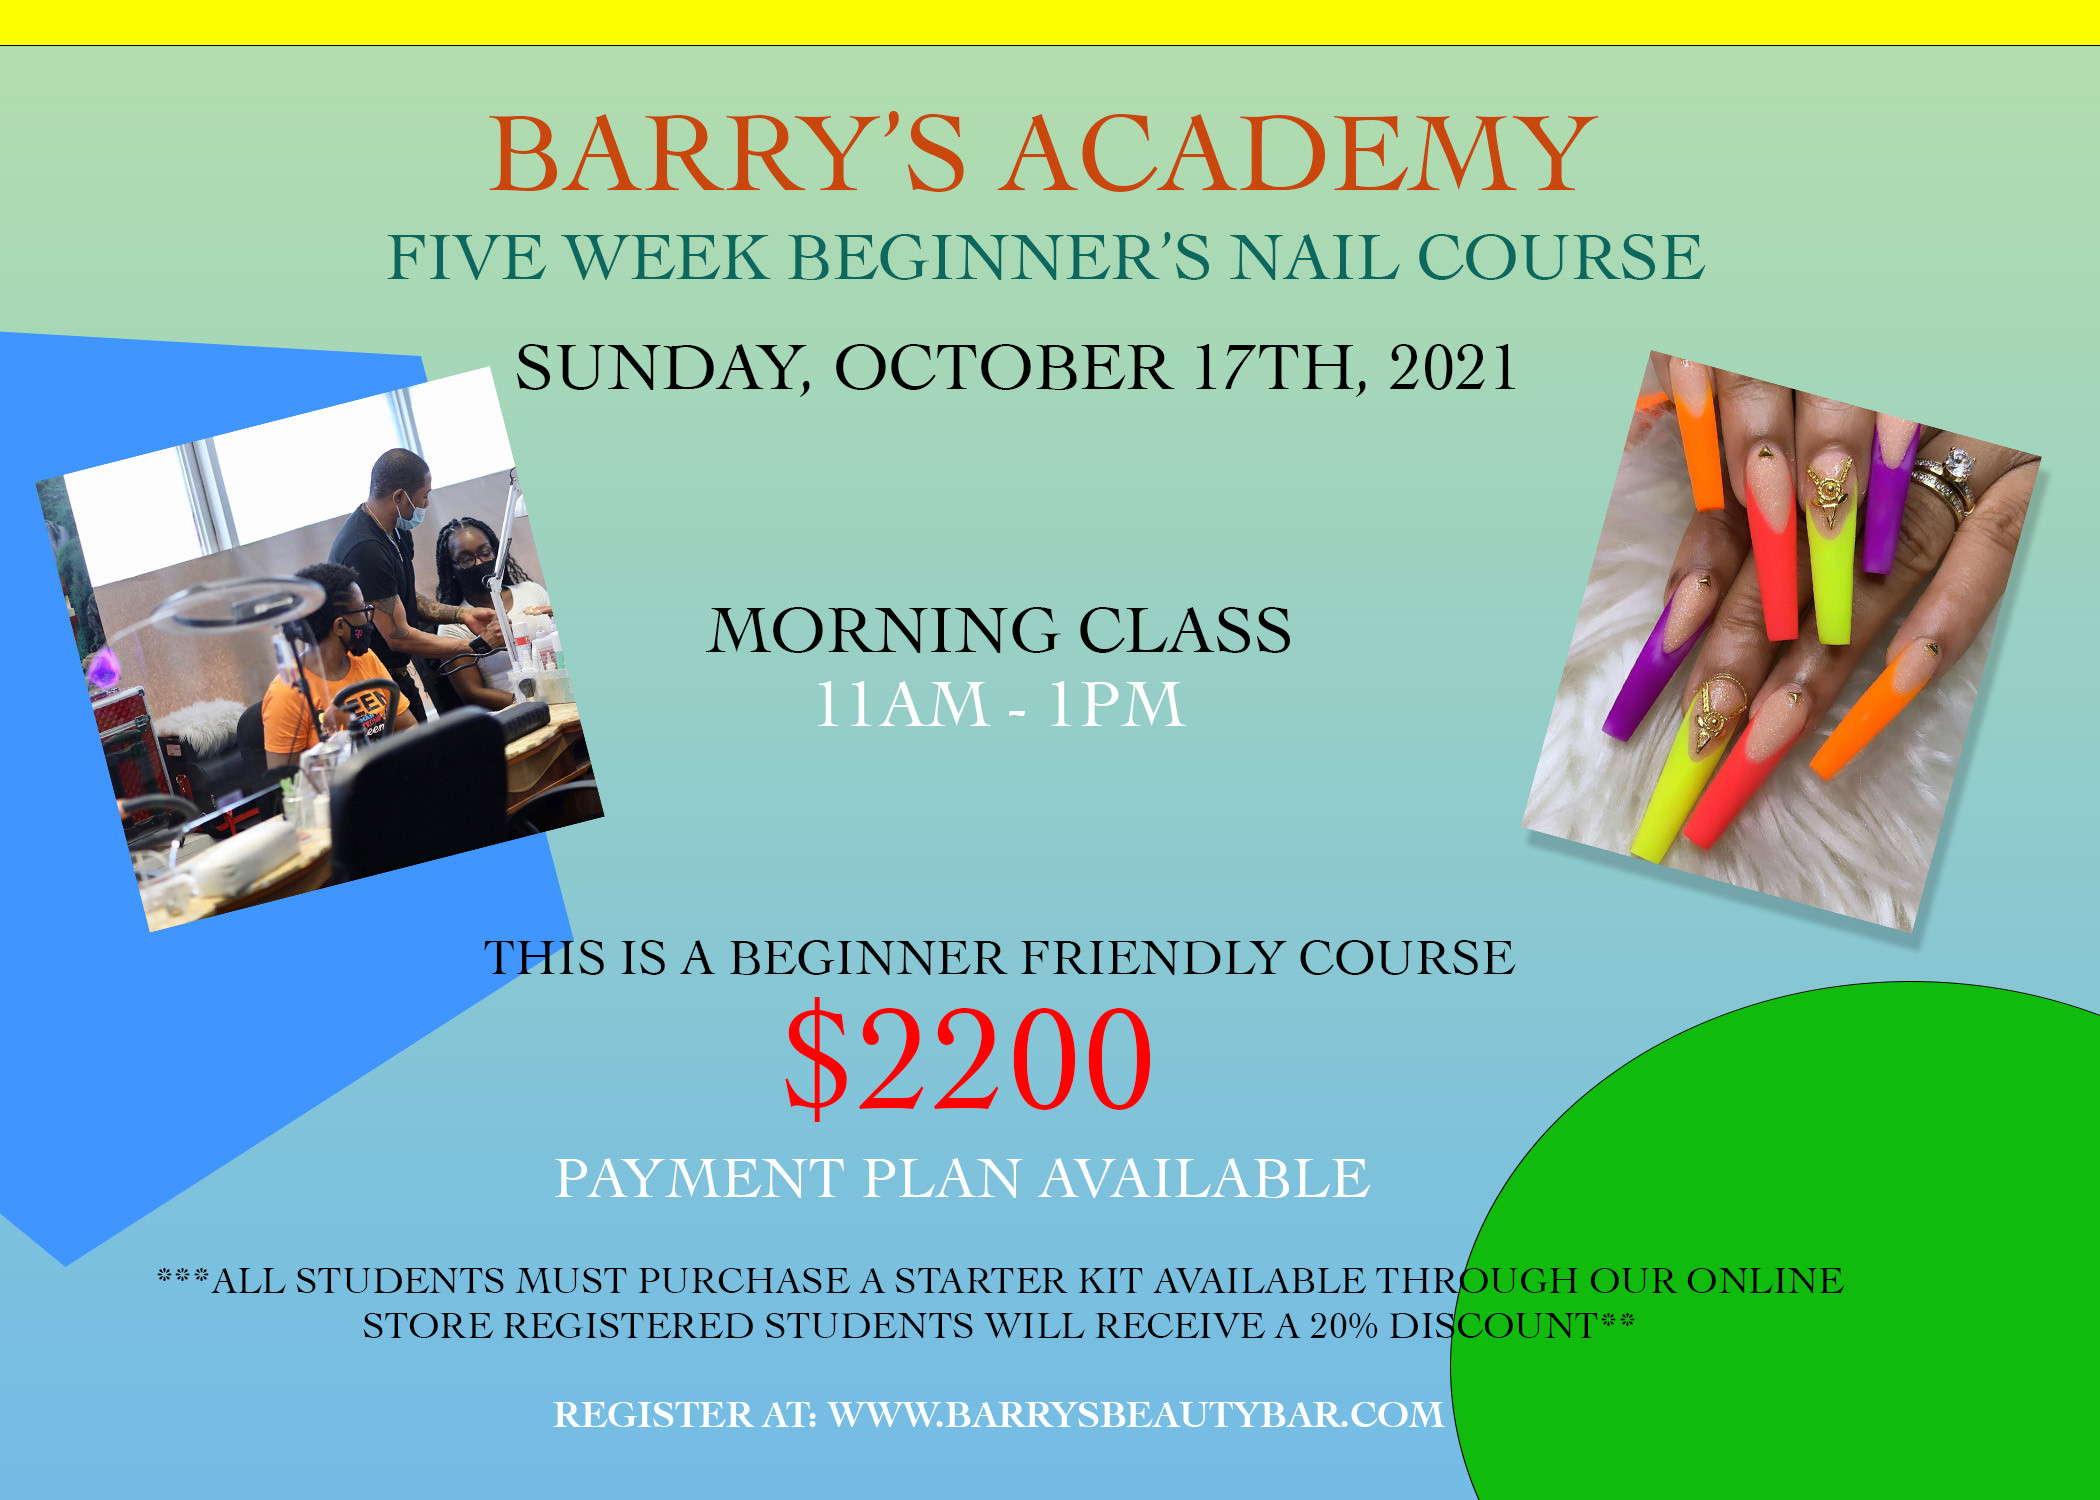 Barry's Academy (OCT 17TH 2021) MORNING